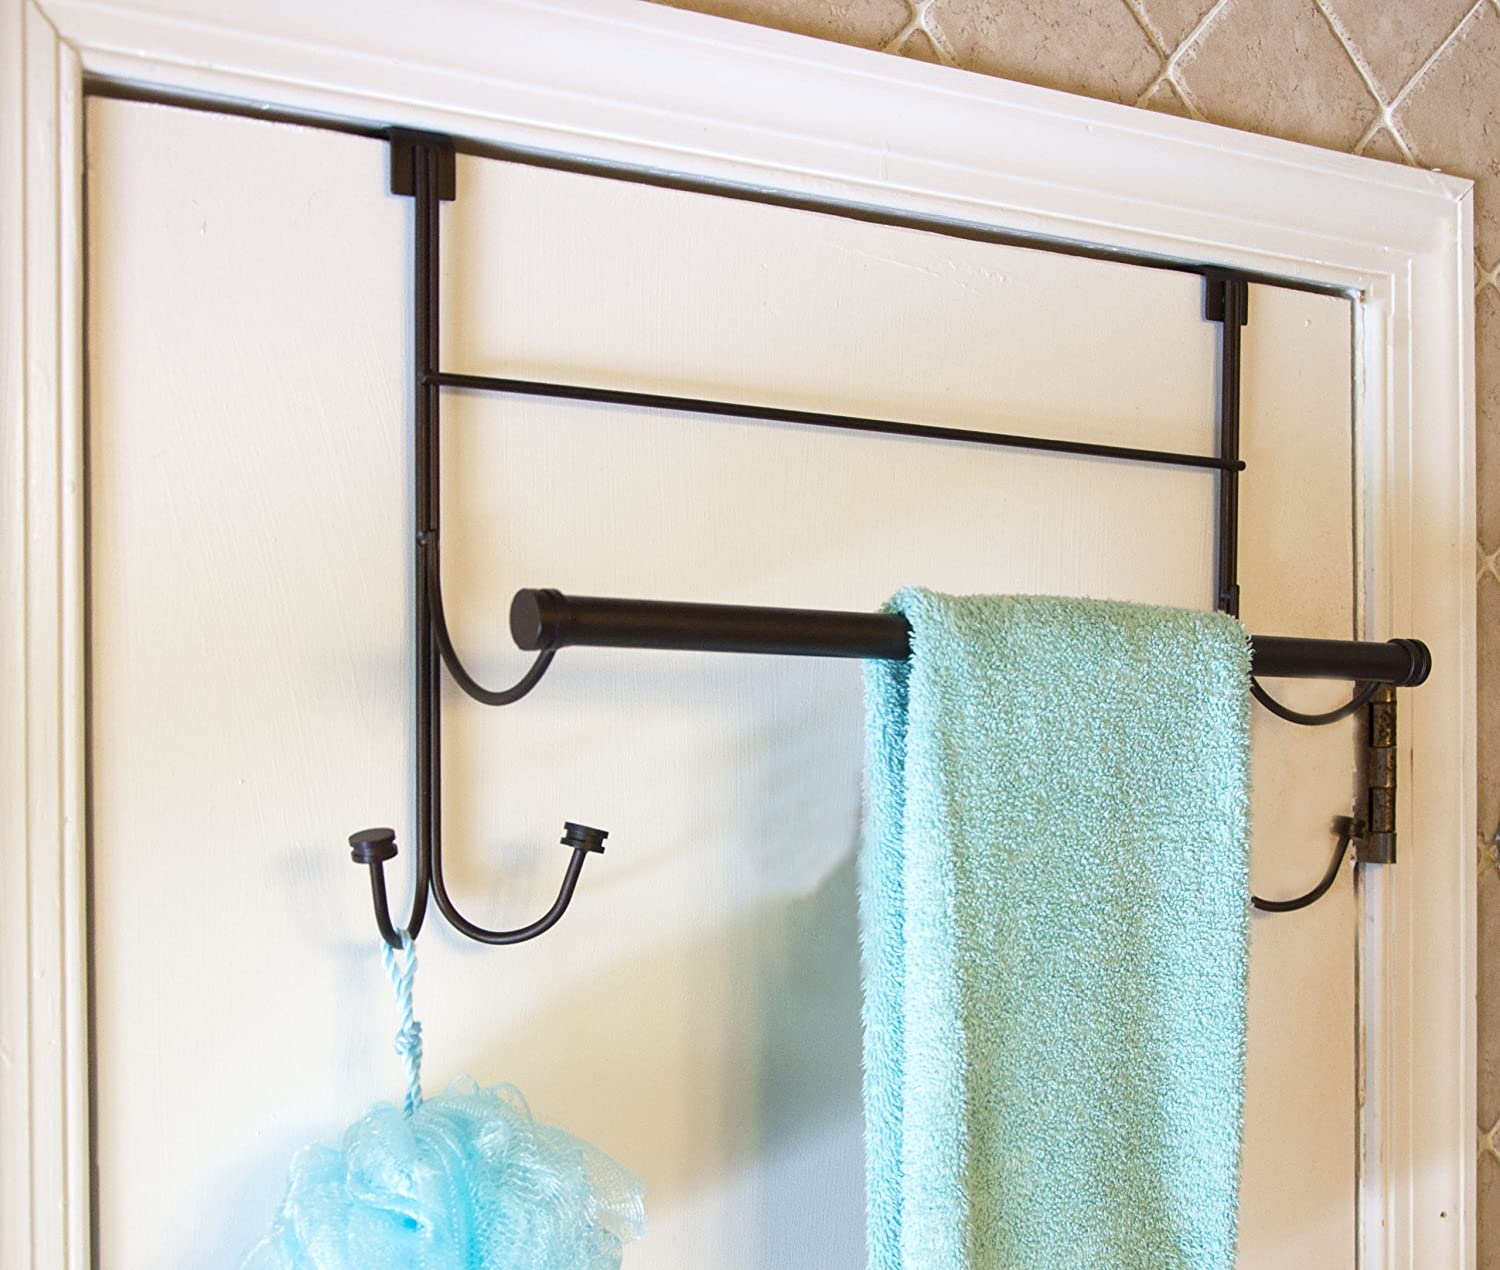 Amazon.com: Bathsense Over the Door Towel Rack with 4 Hooks, Oil ...